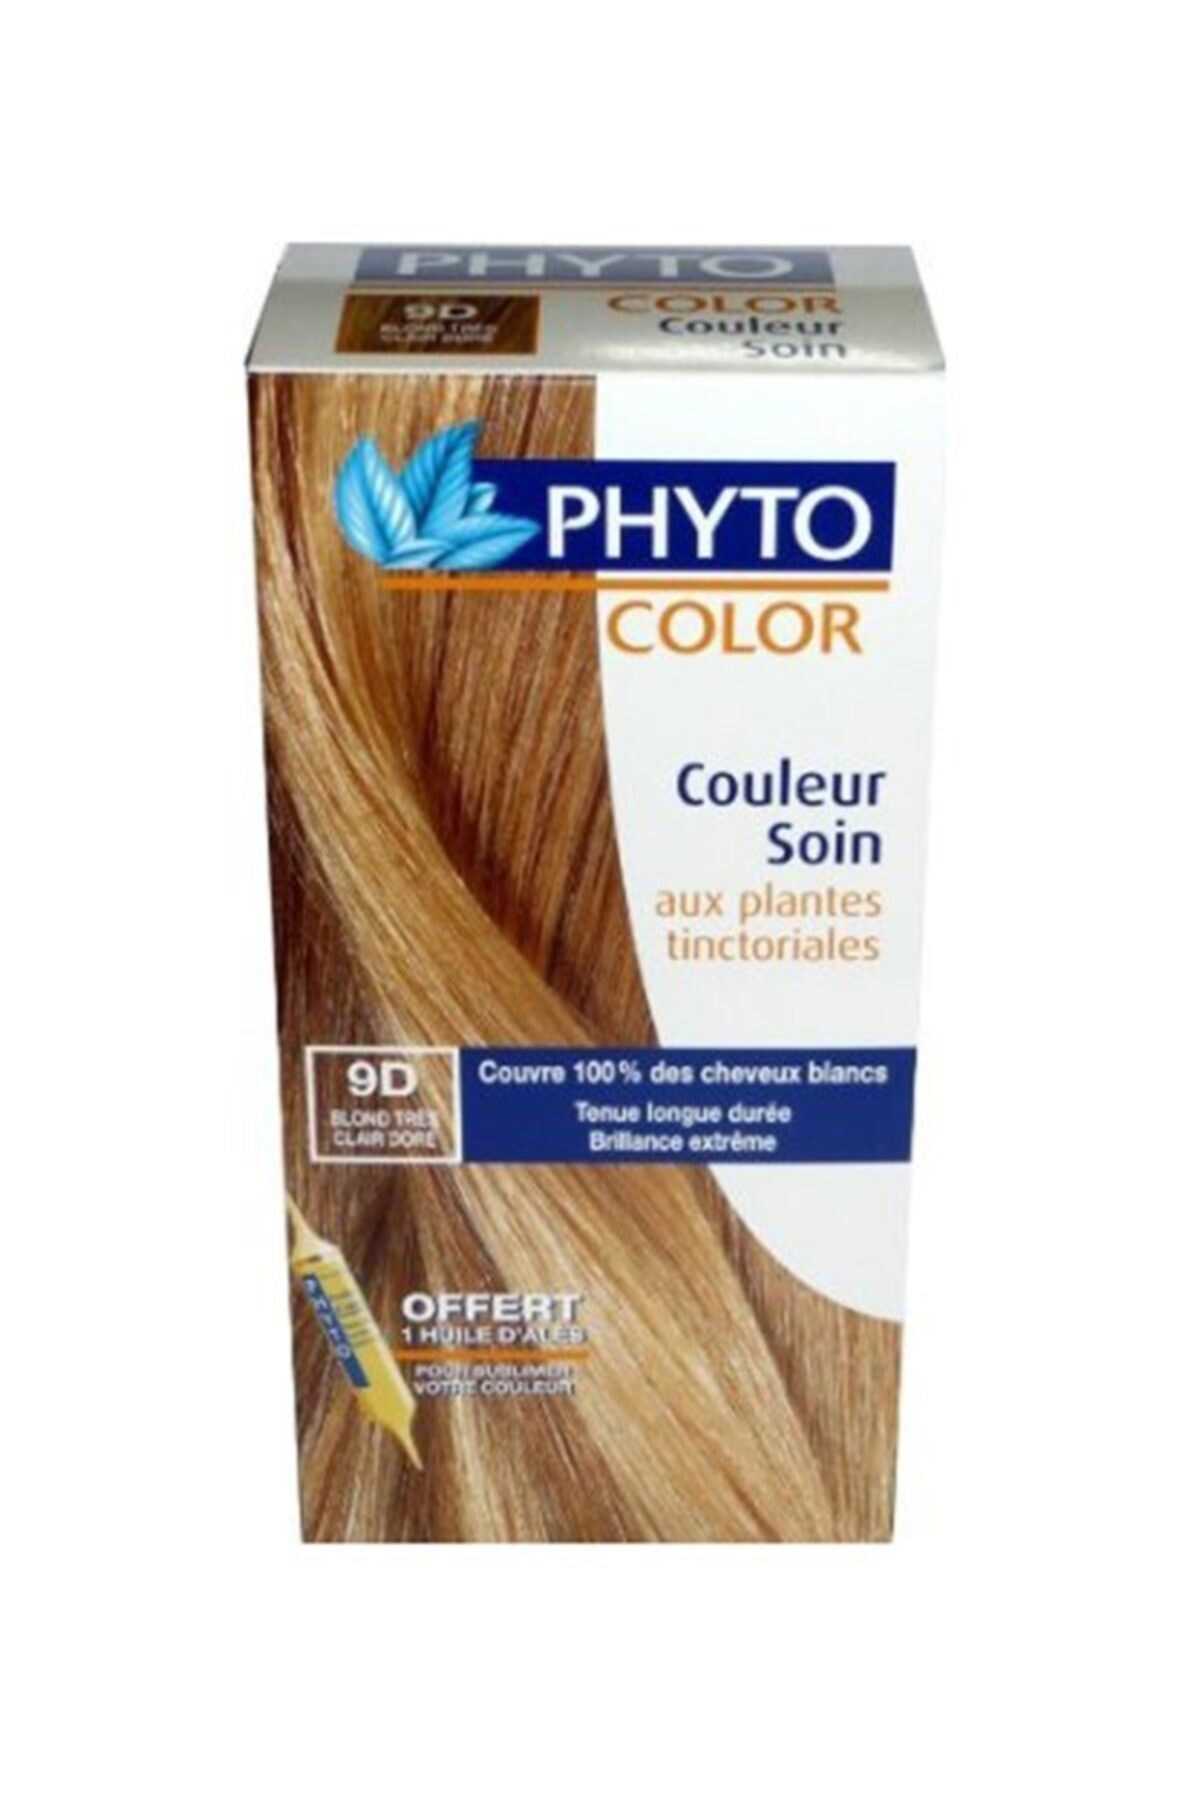 Phyto Color Saç Boyası 9d Very Light Golden Blond (Açık Sarı Dore) 1